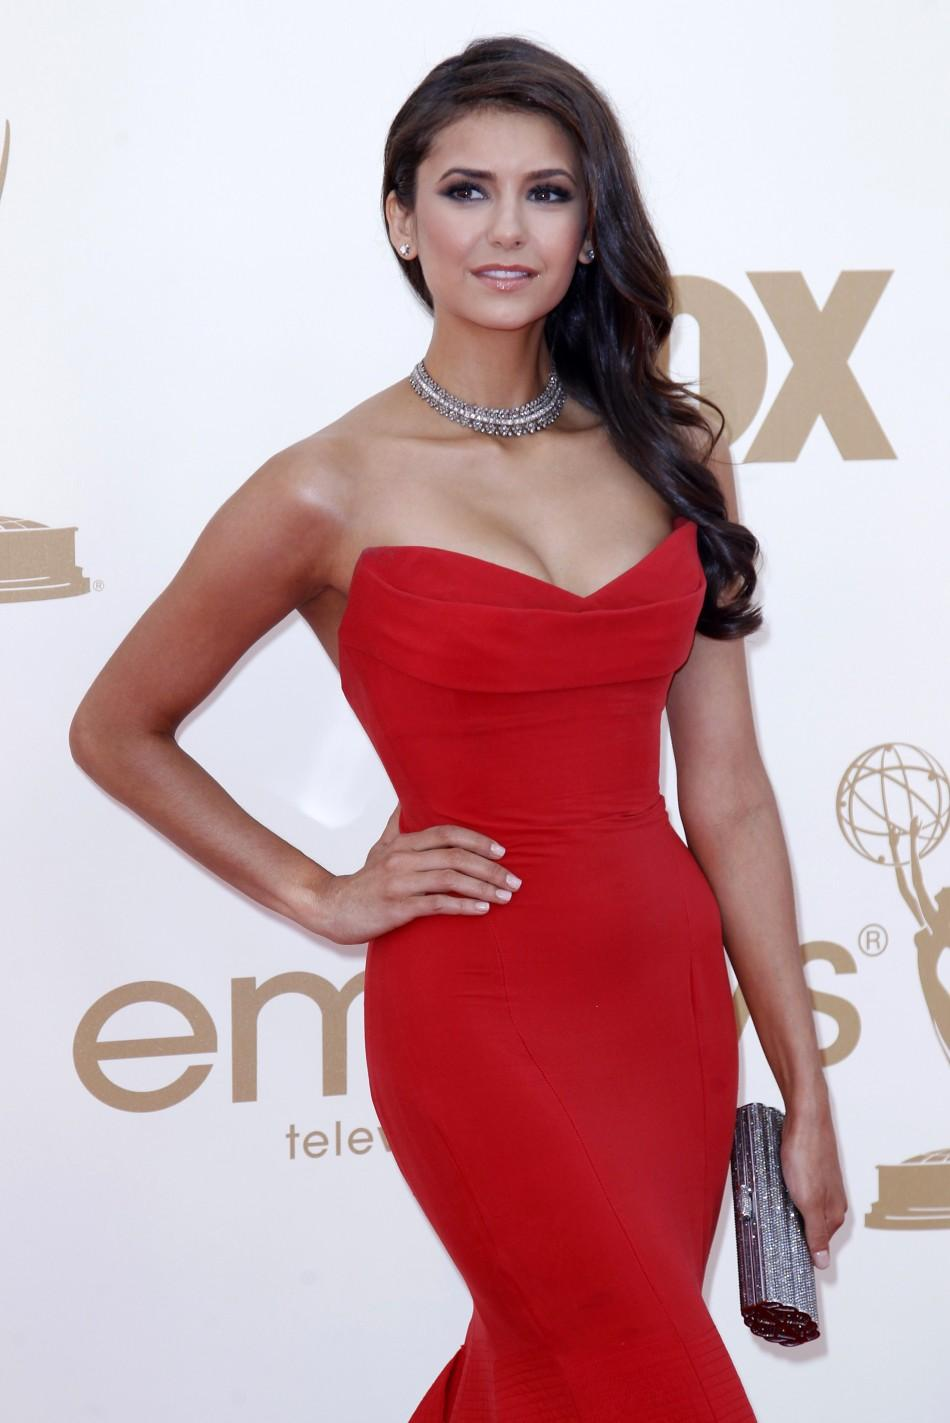 Actress Nina Dobrev arrives at the 63rd Primetime Emmy Awards in Los Angeles September 18, 2011.